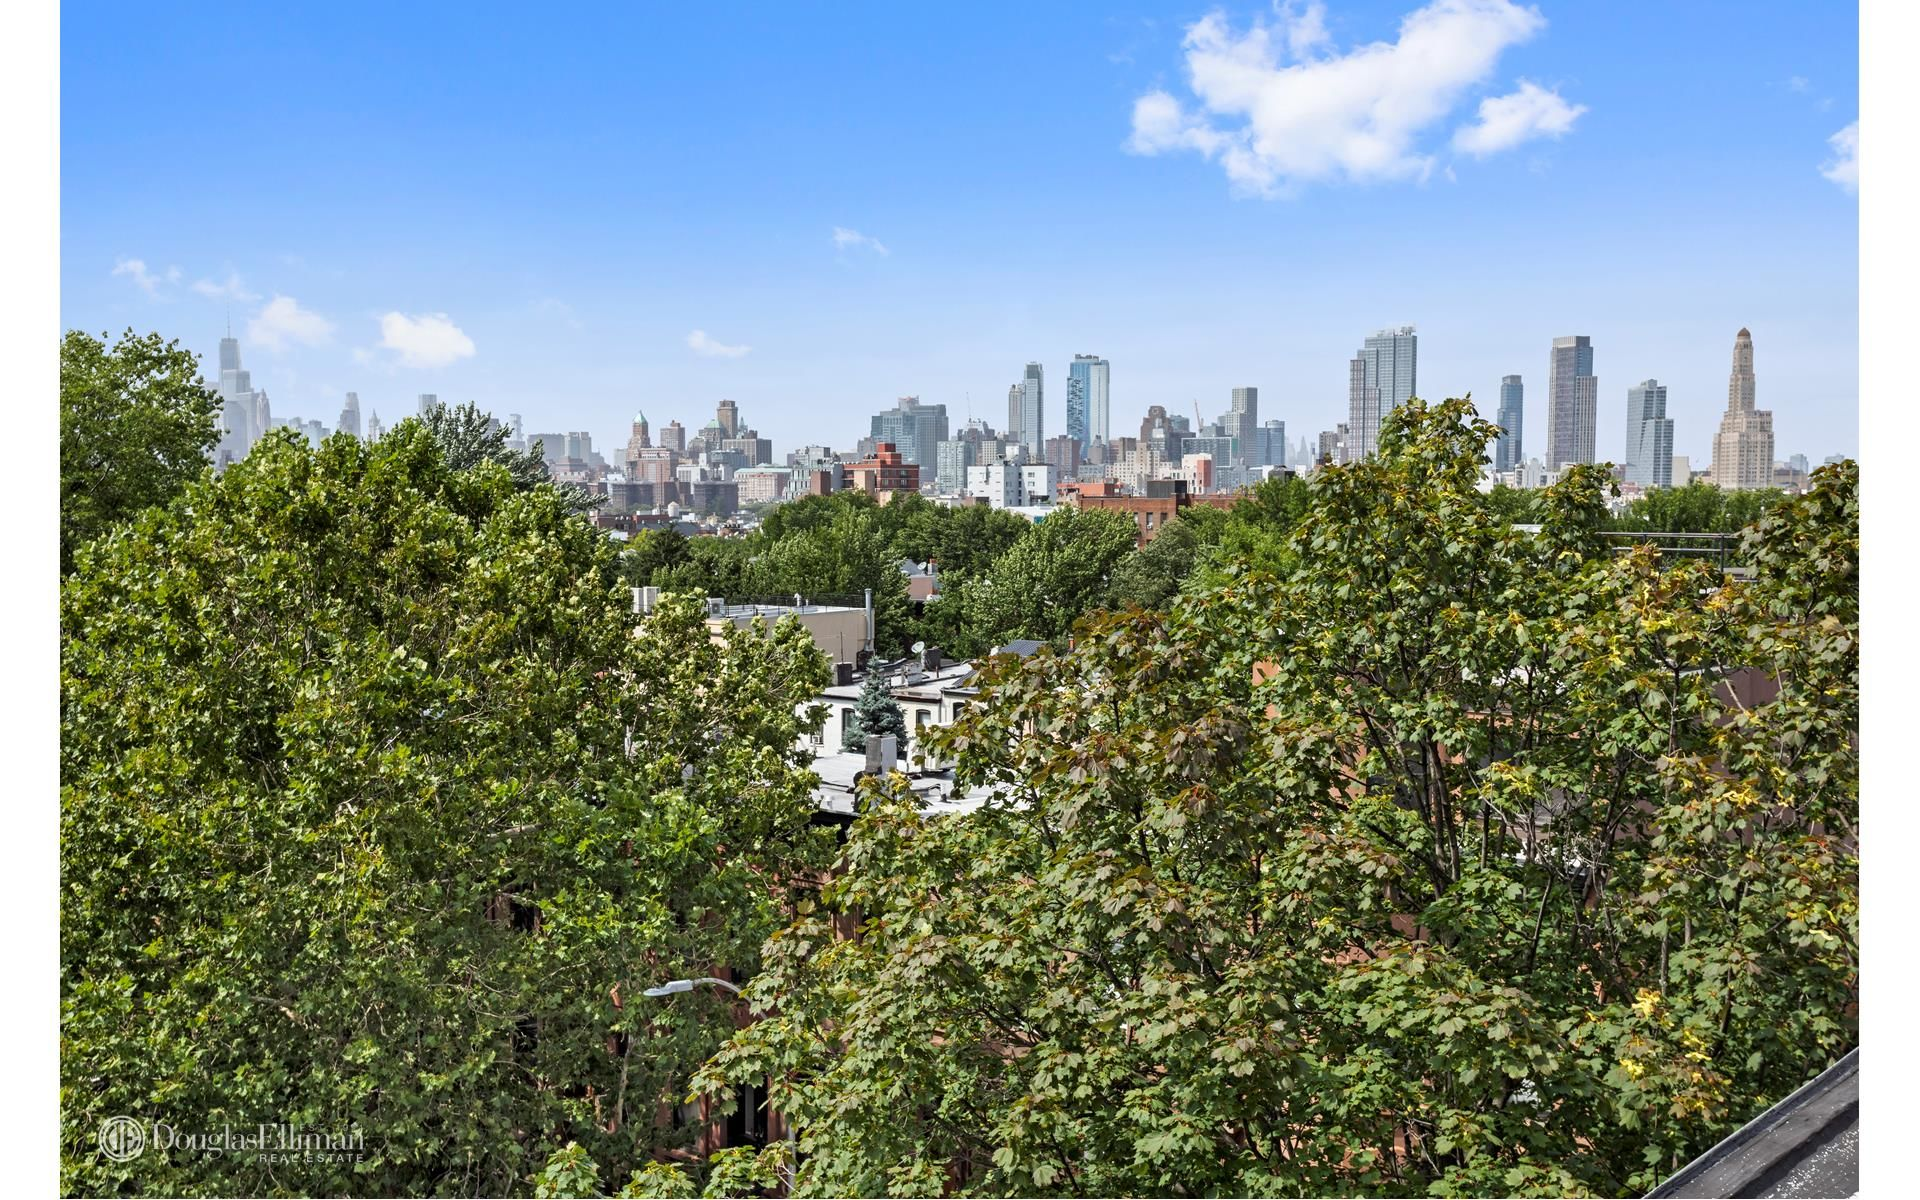 378 6th Ave, APT 4A Photo 4 - ELLIMAN-3415402